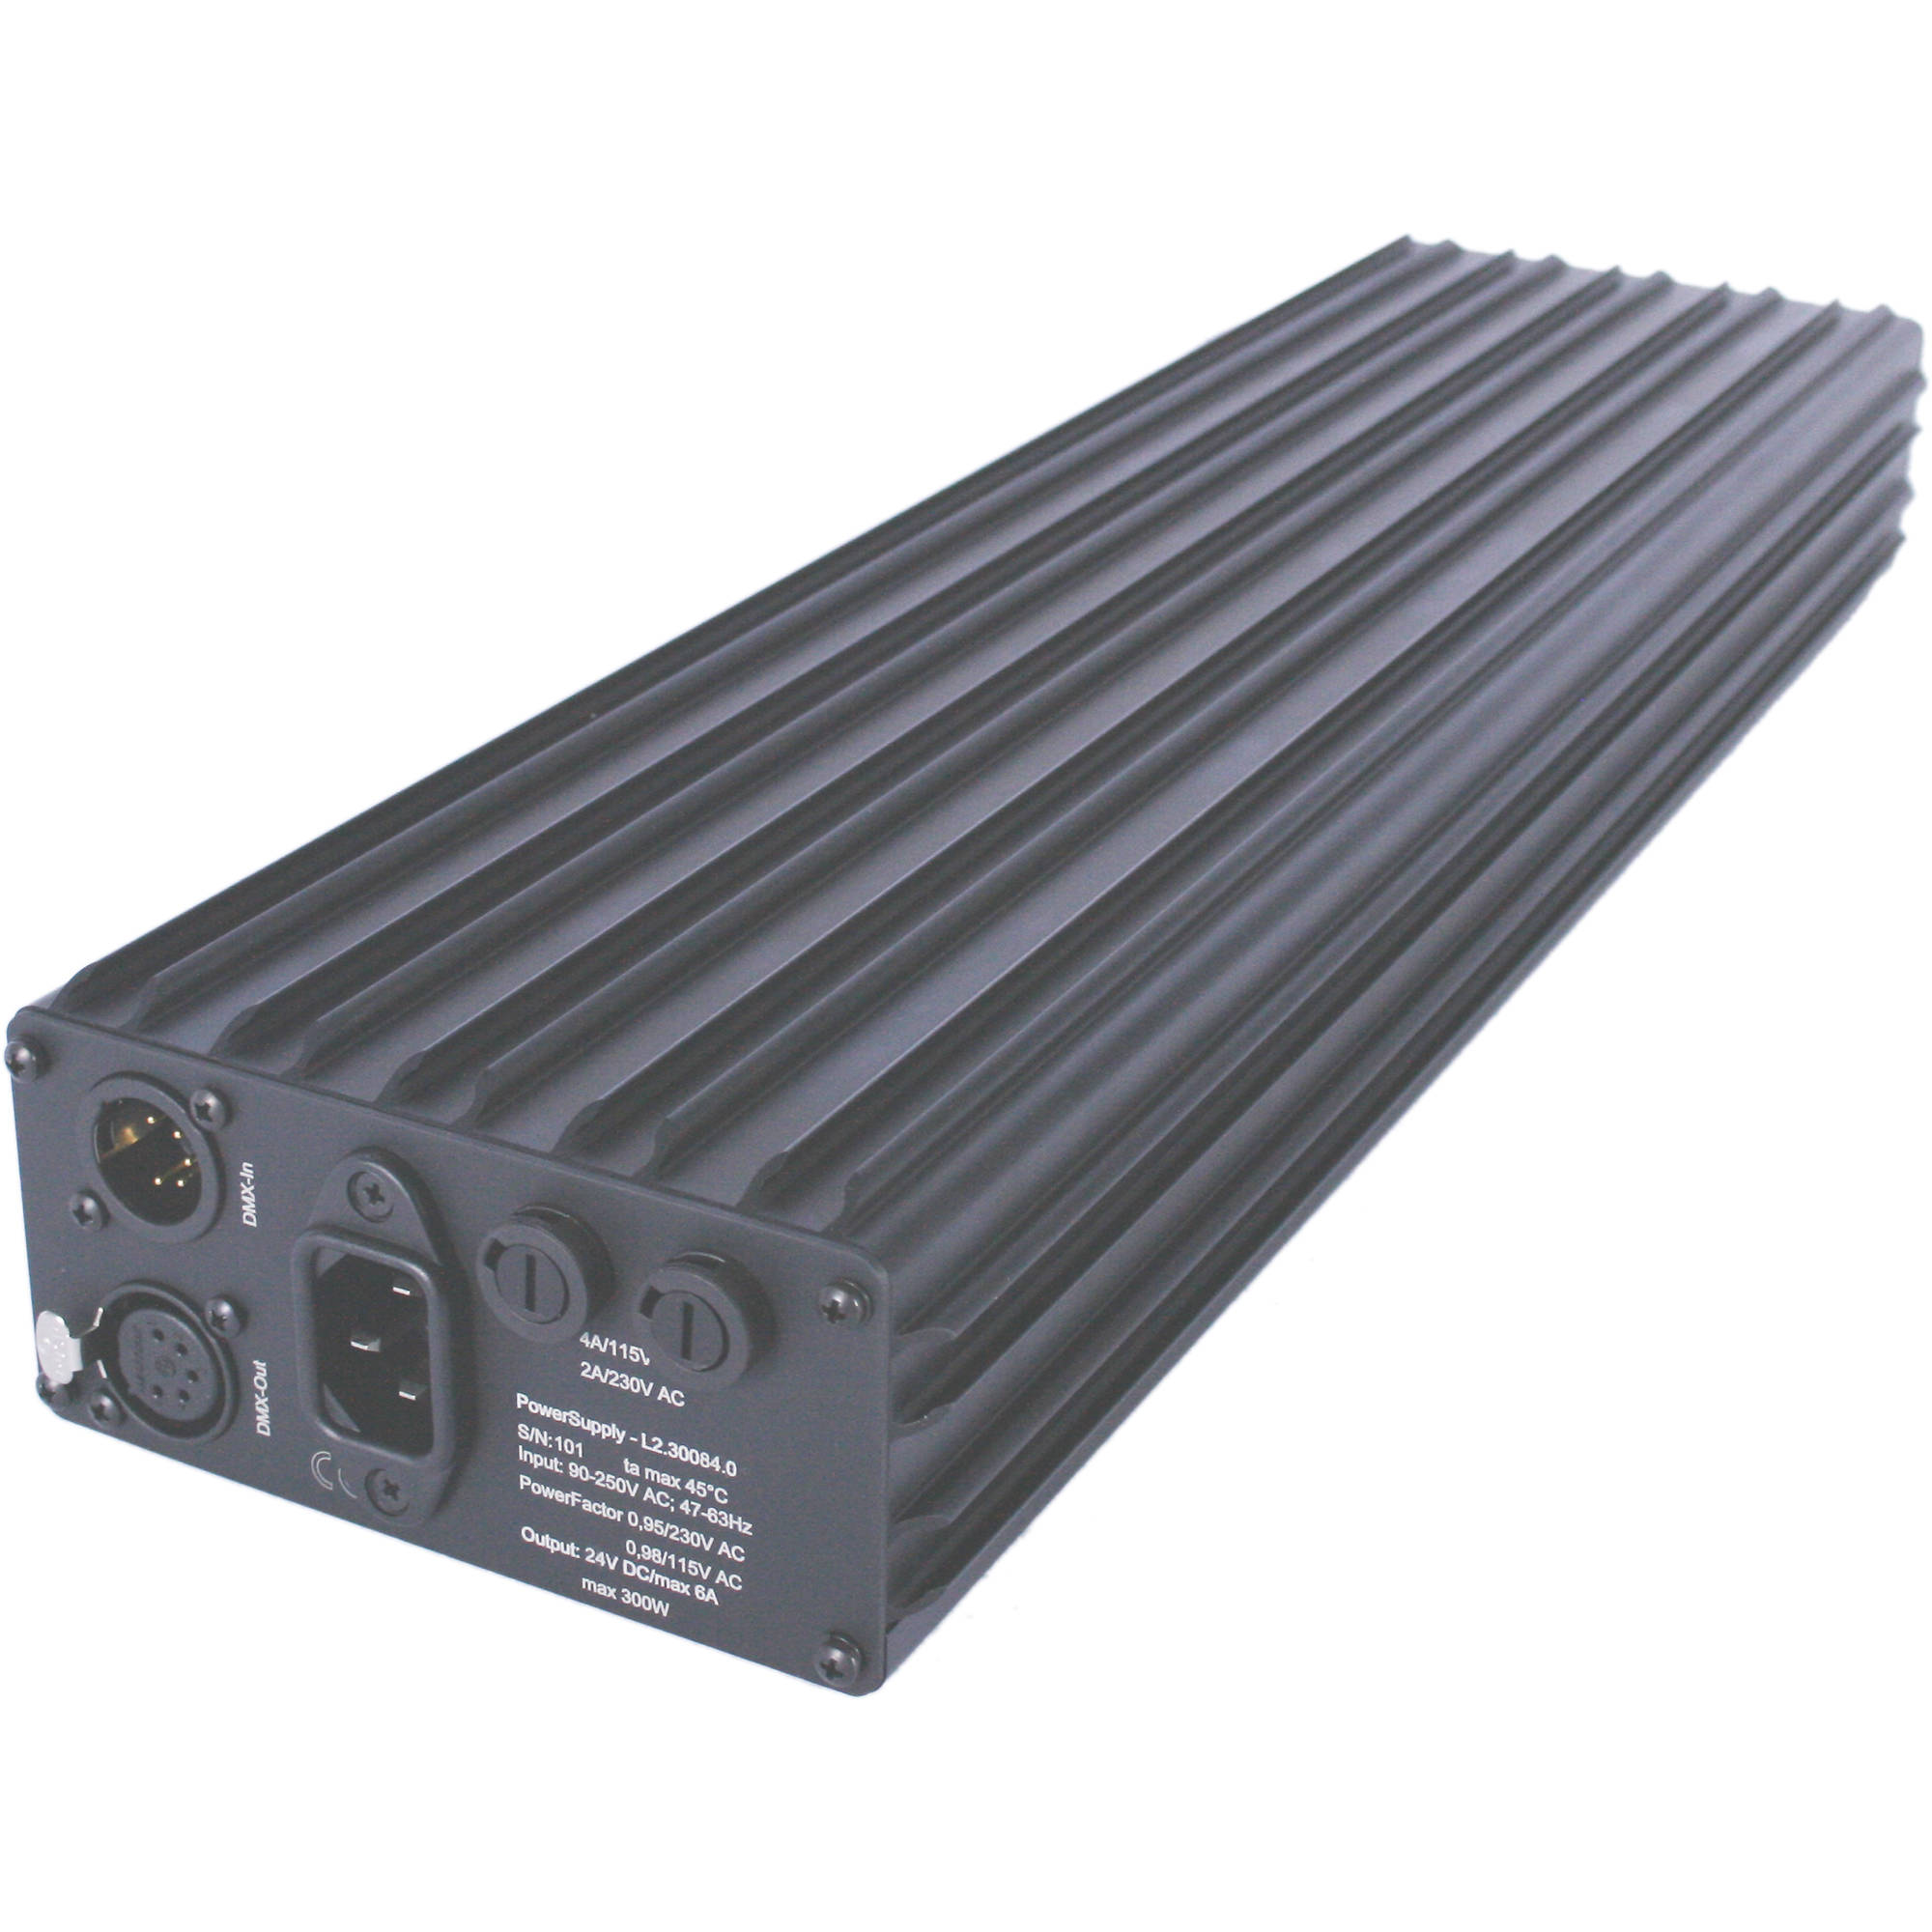 Arri Dmx Power Supply For Broadcaster Led Panel L230084a Bh The Over Cat5 System Is Not To Be Confused With